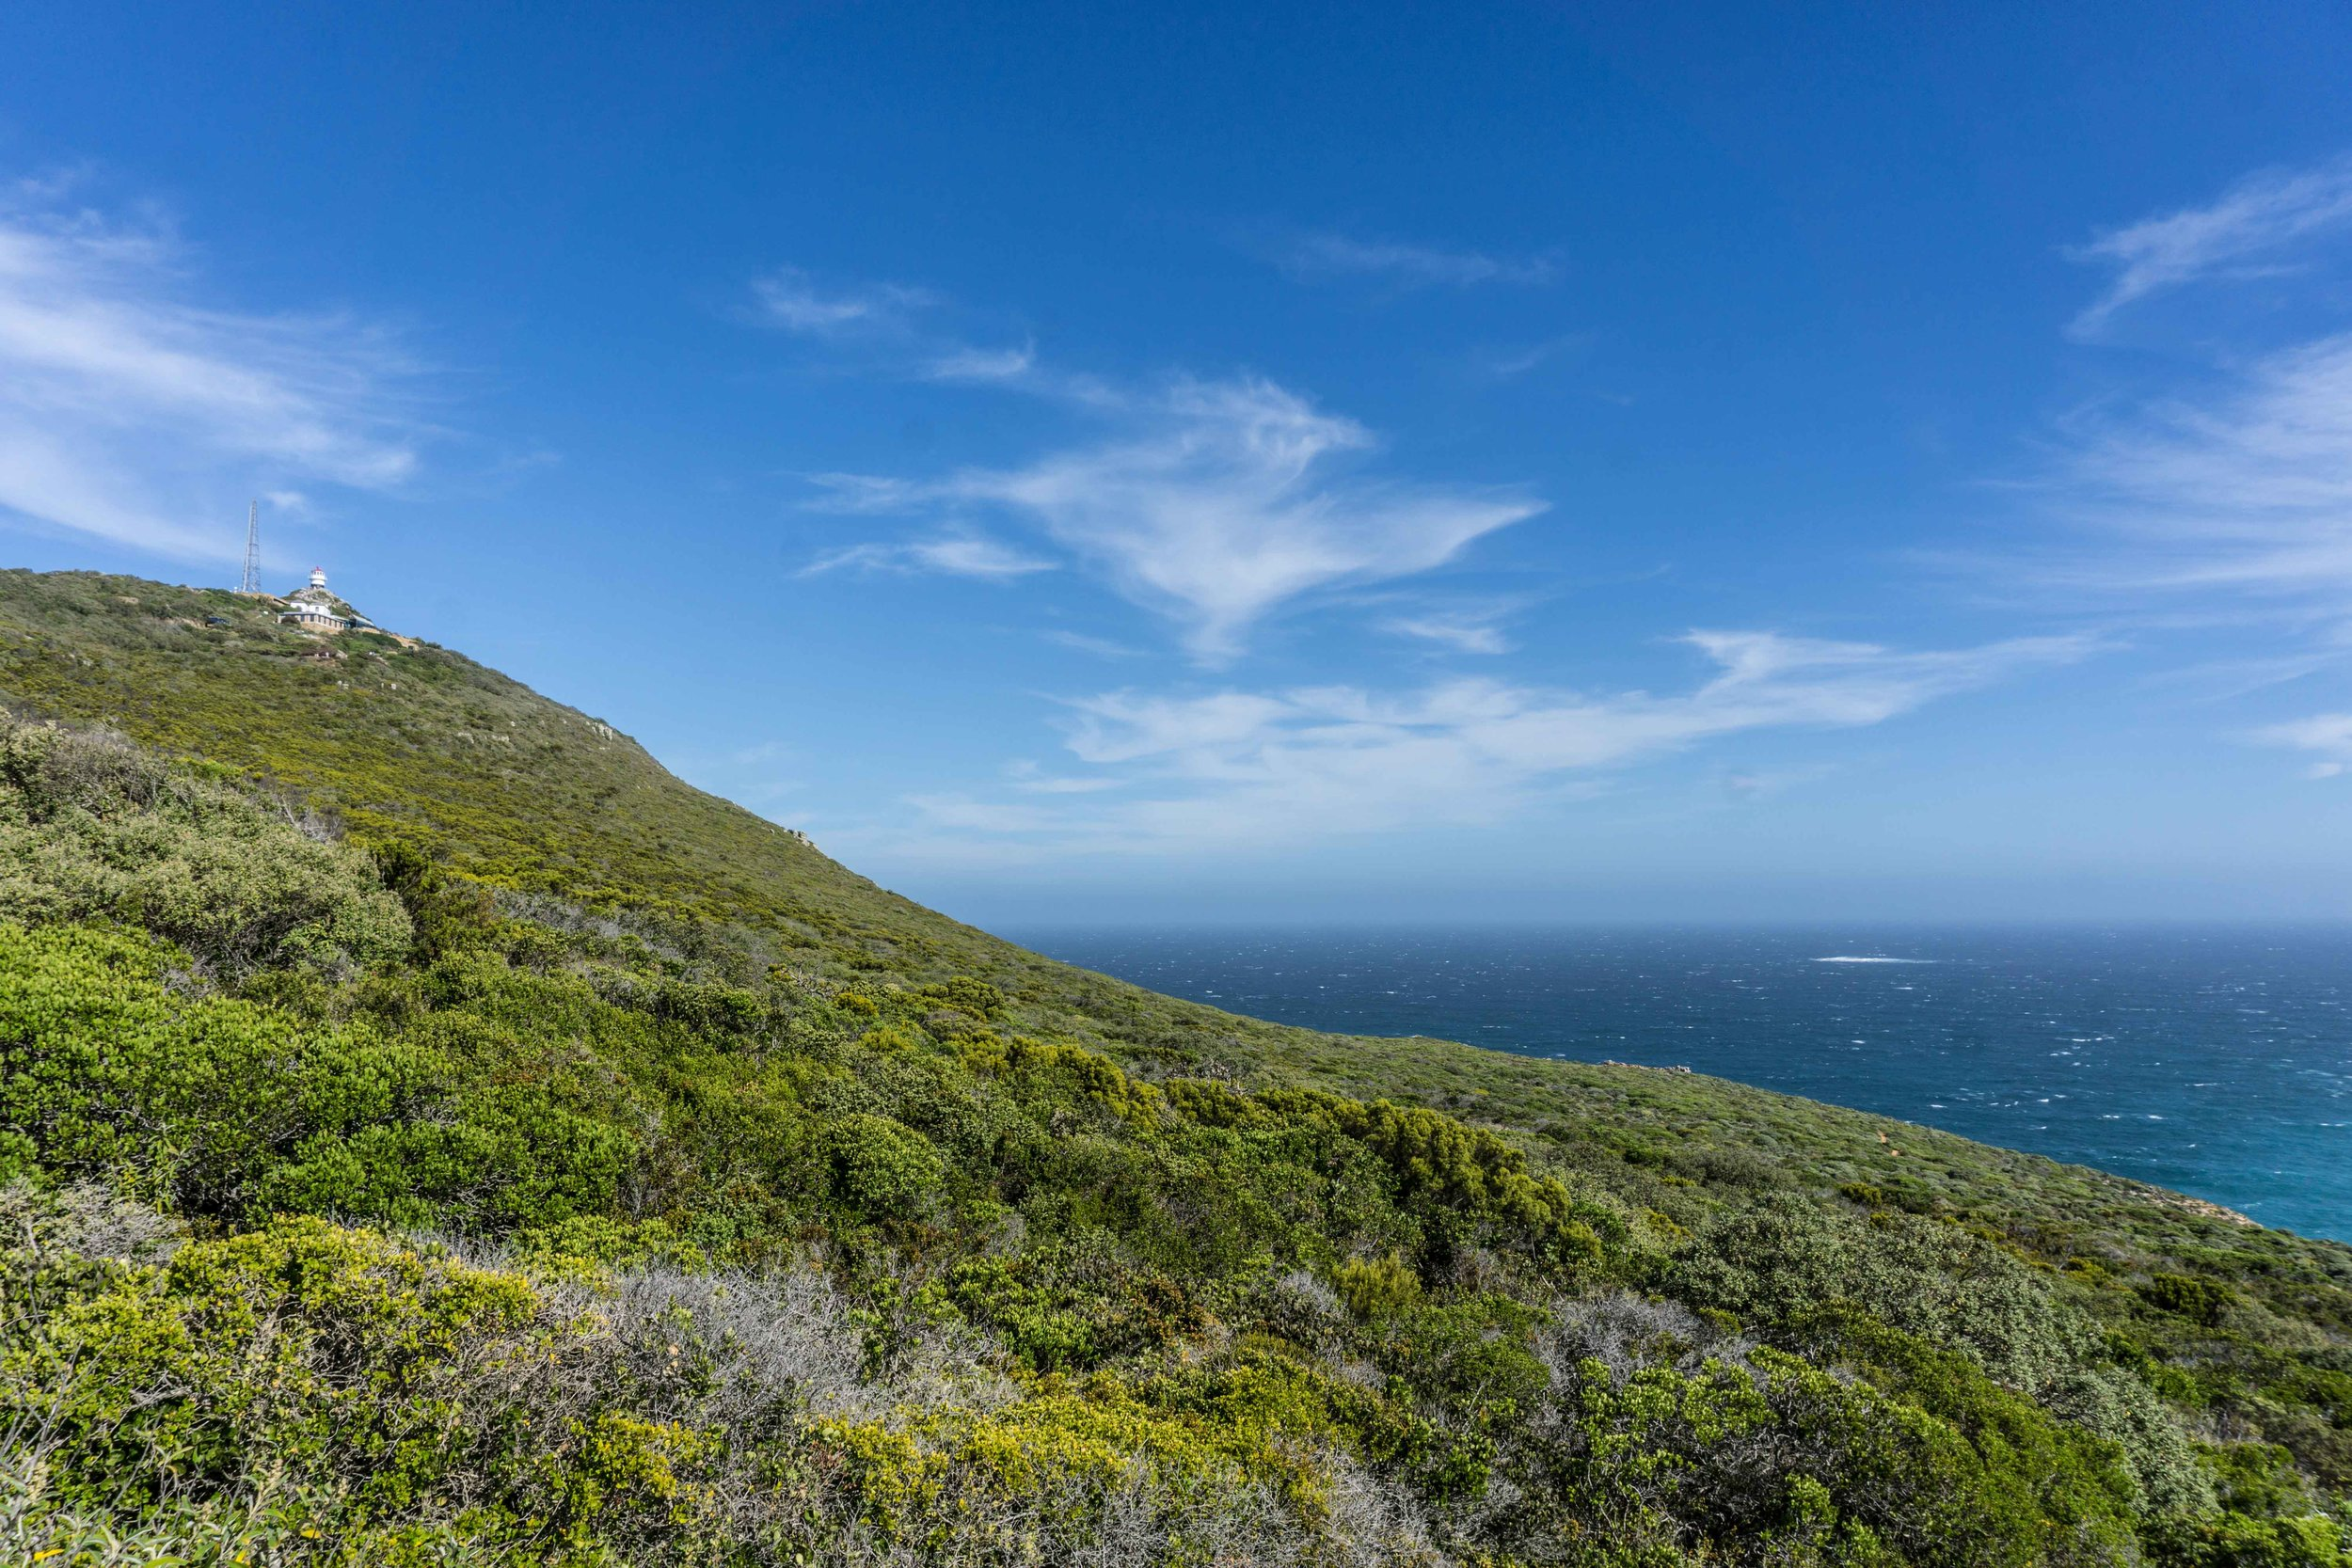 Cape Point from afar